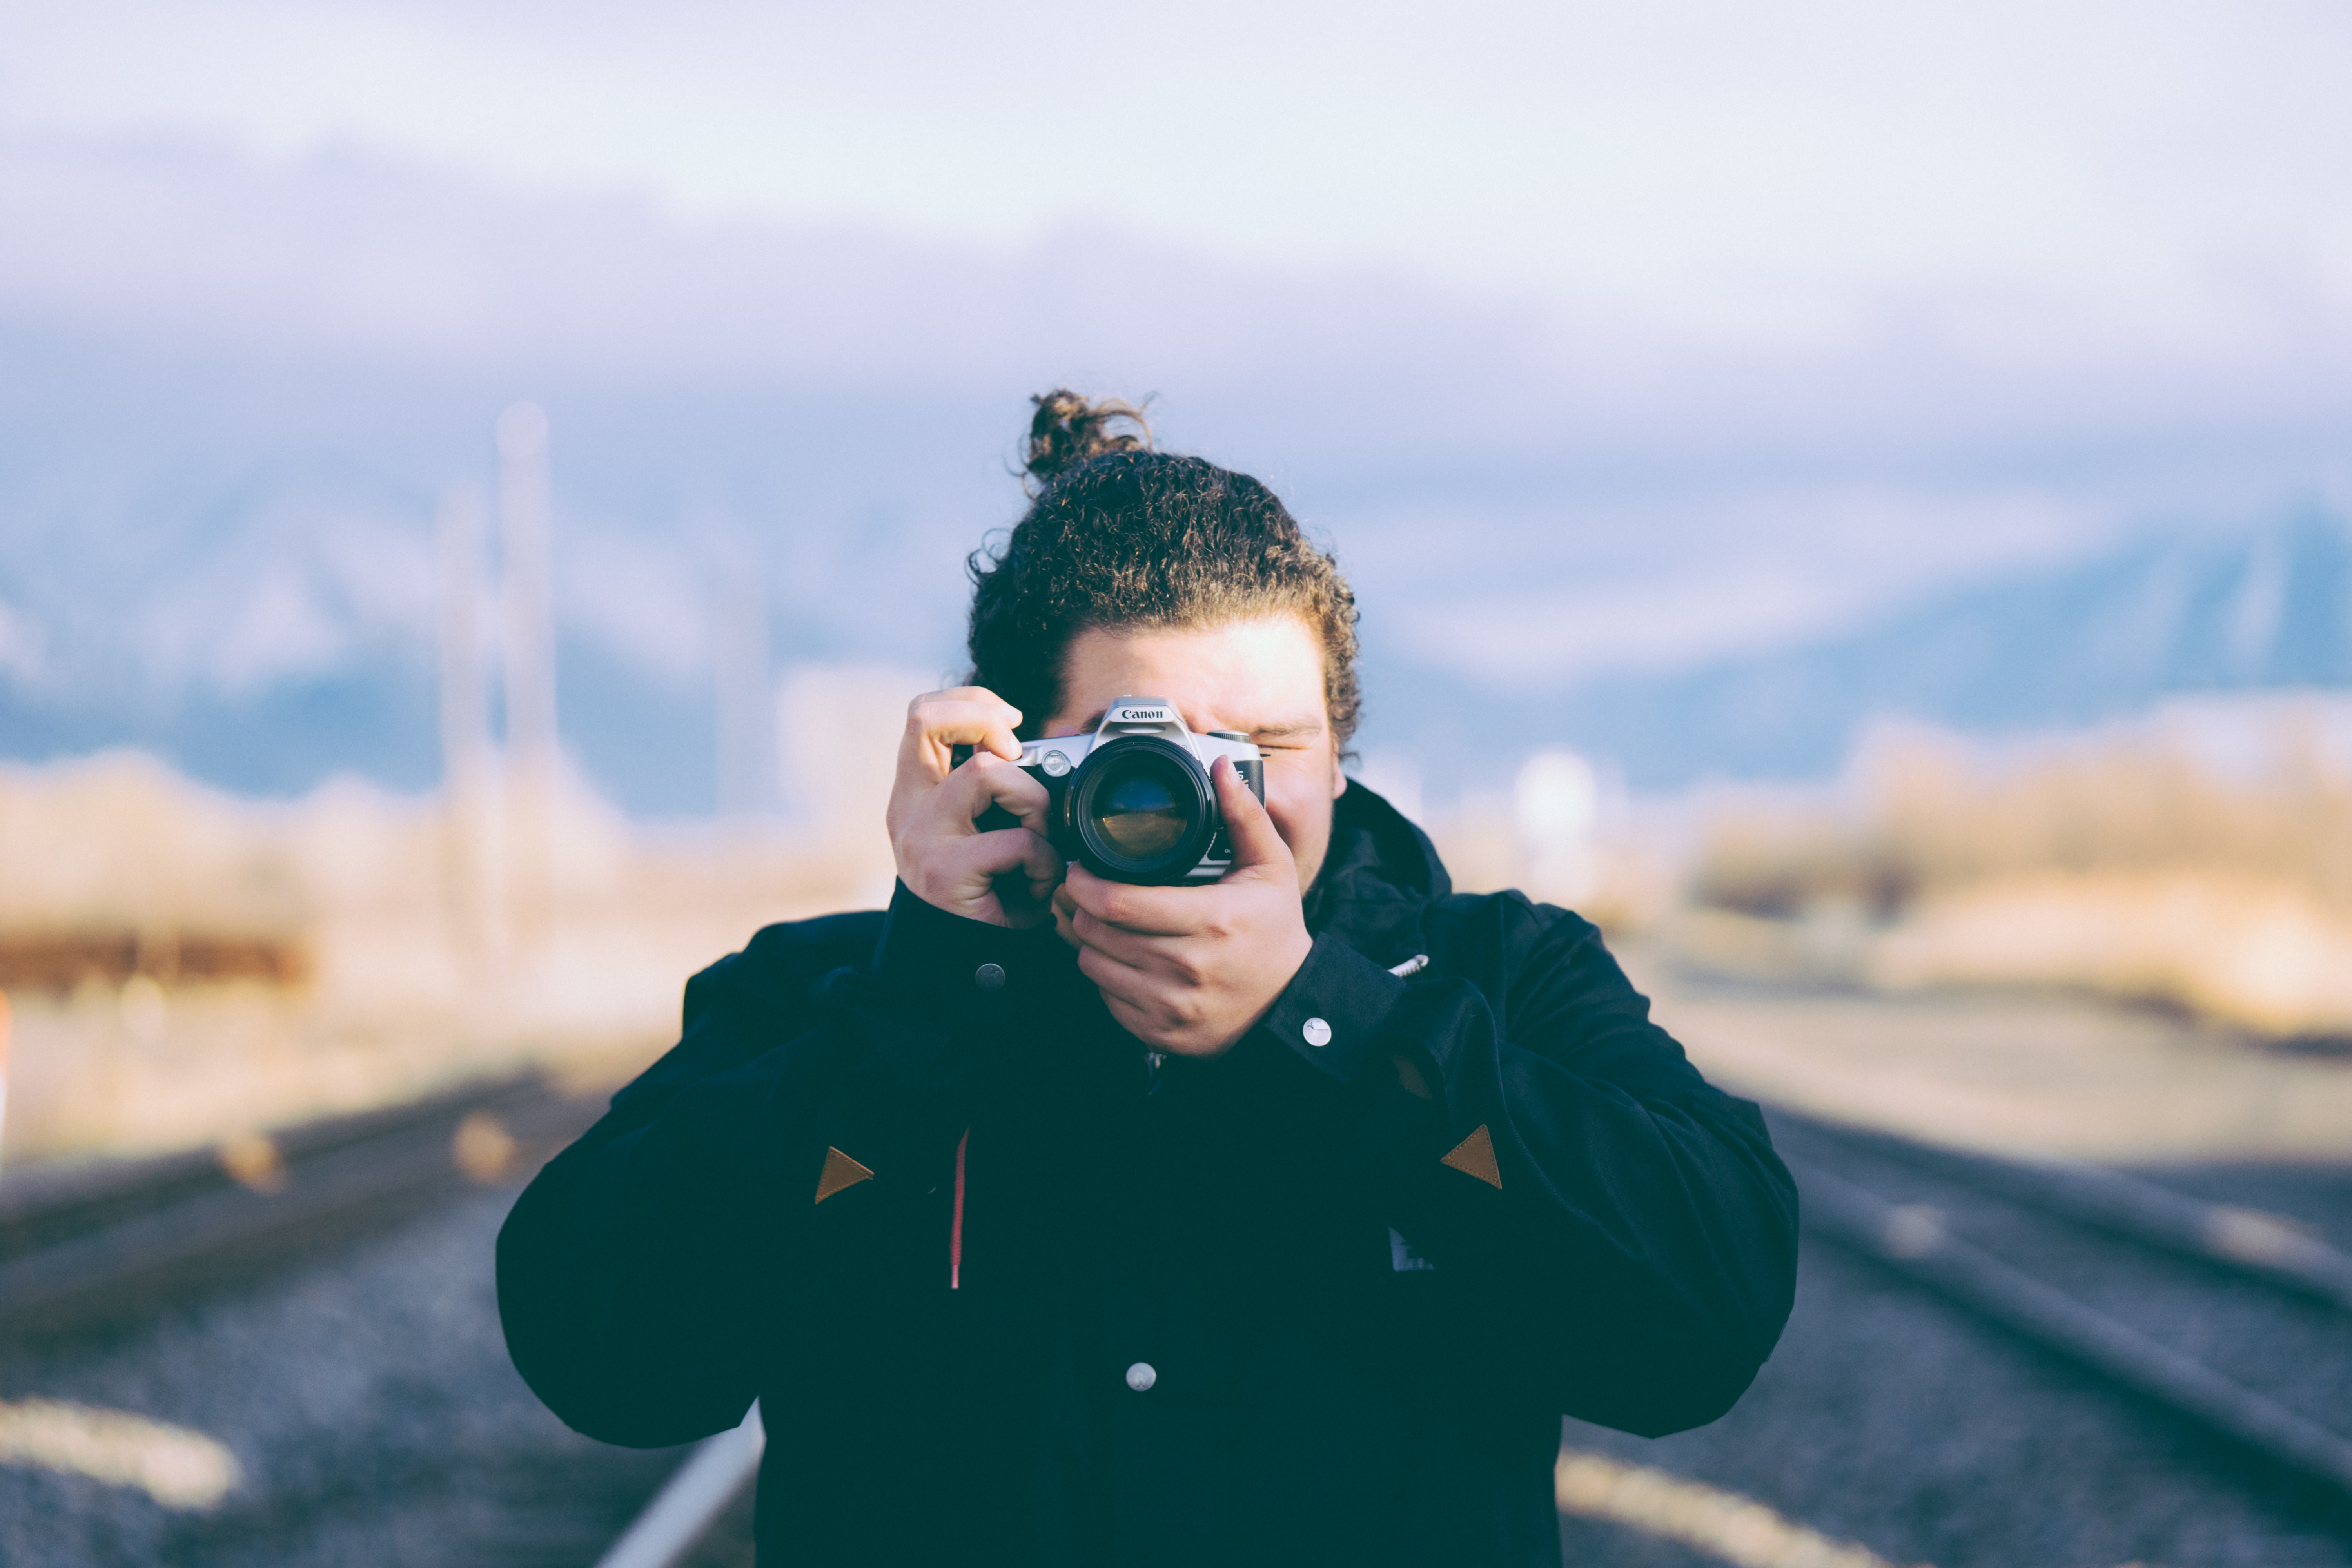 selective focus photography of man holding camera taking photo